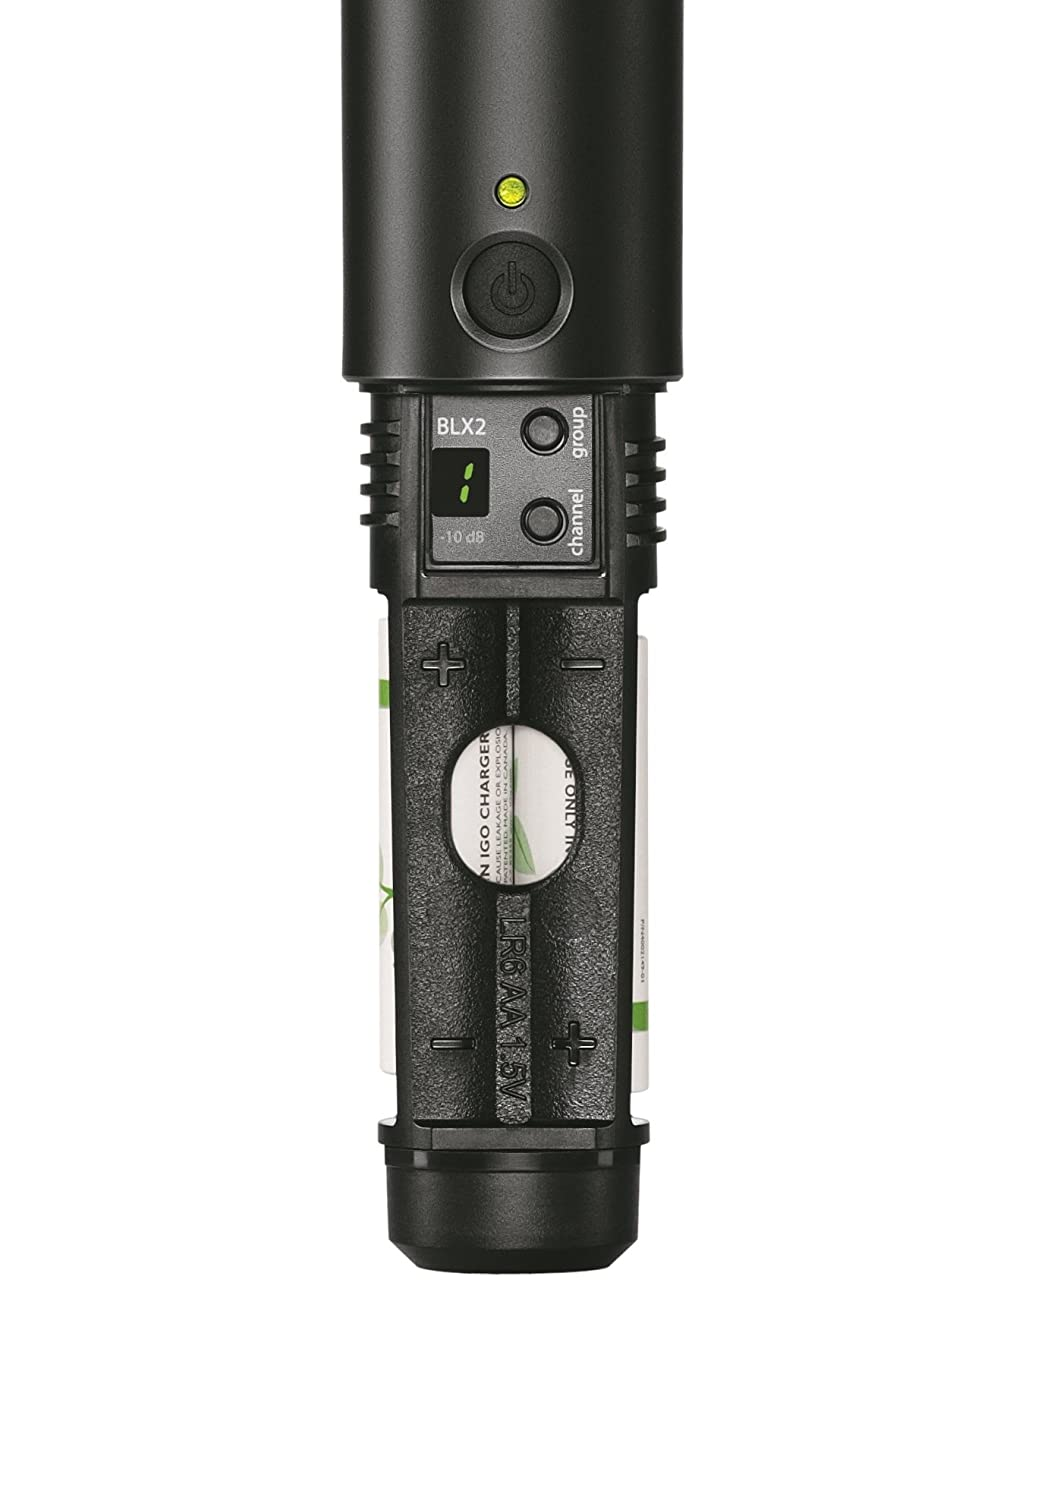 Amazon.com: Shure BLX2/SM58 Handheld Transmitter with SM58 ...